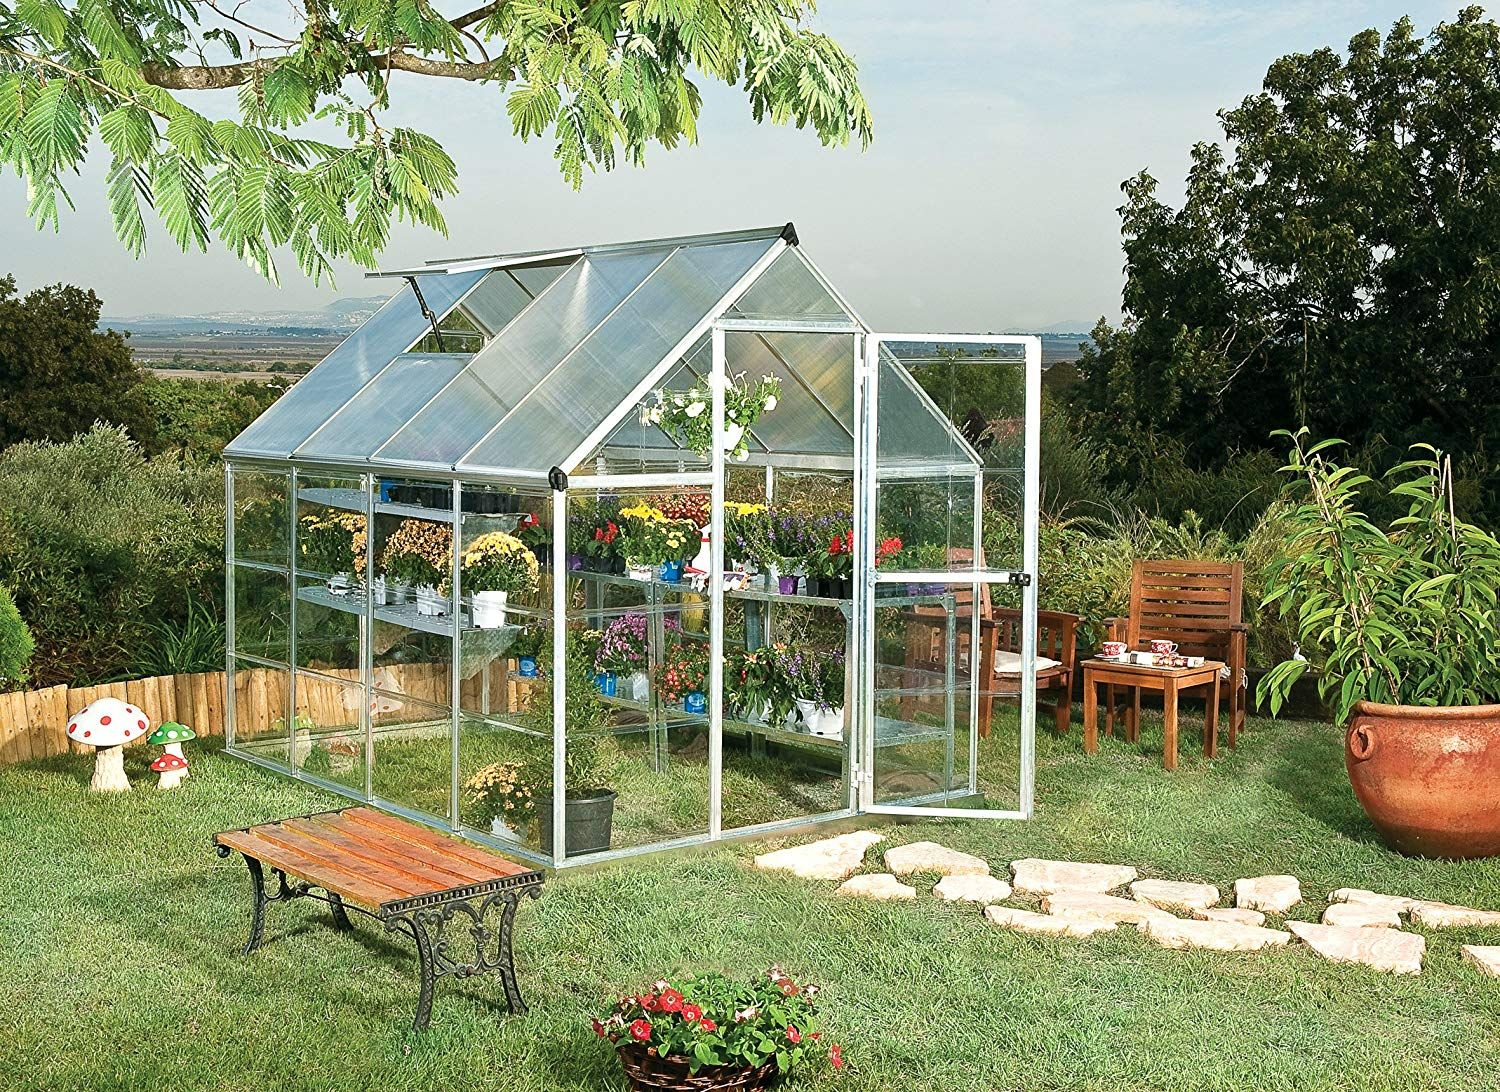 Amazon Is Selling a Tiny Backyard Greenhouse to Fuel Your Plant Obsession